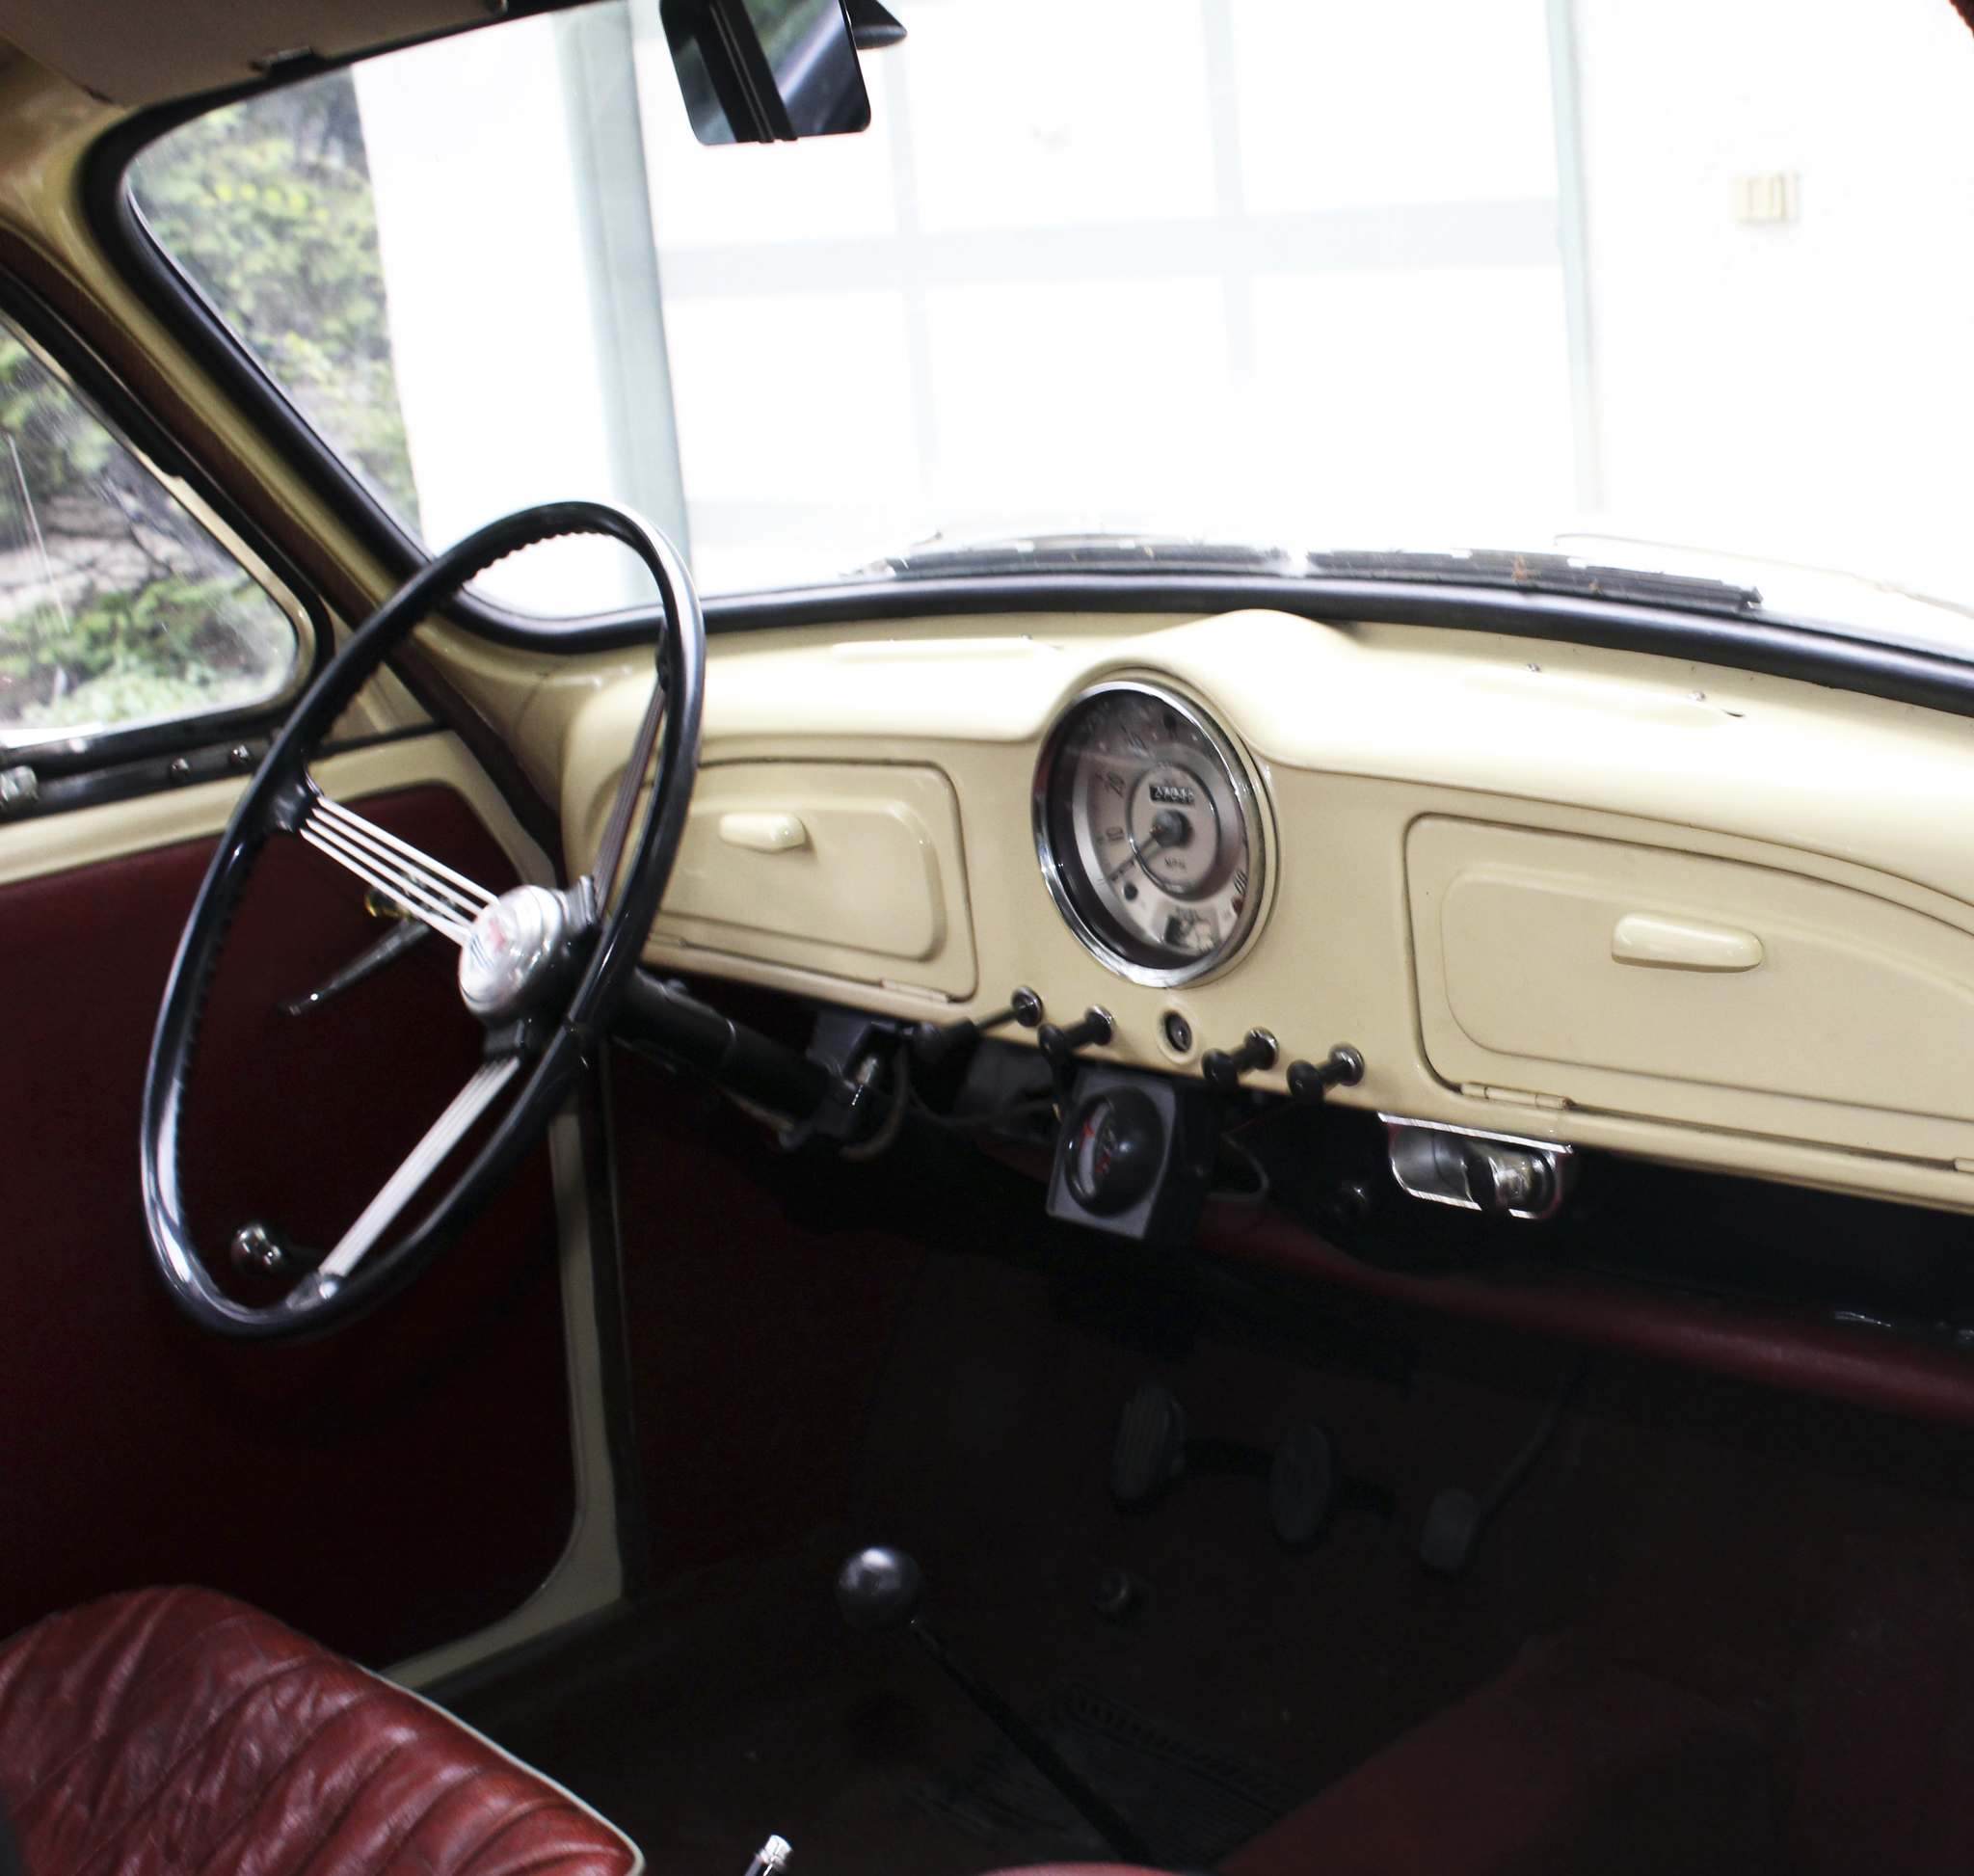 The Minor has a classic feel with red-leather bucket seats and a pull-start switch on the dash.